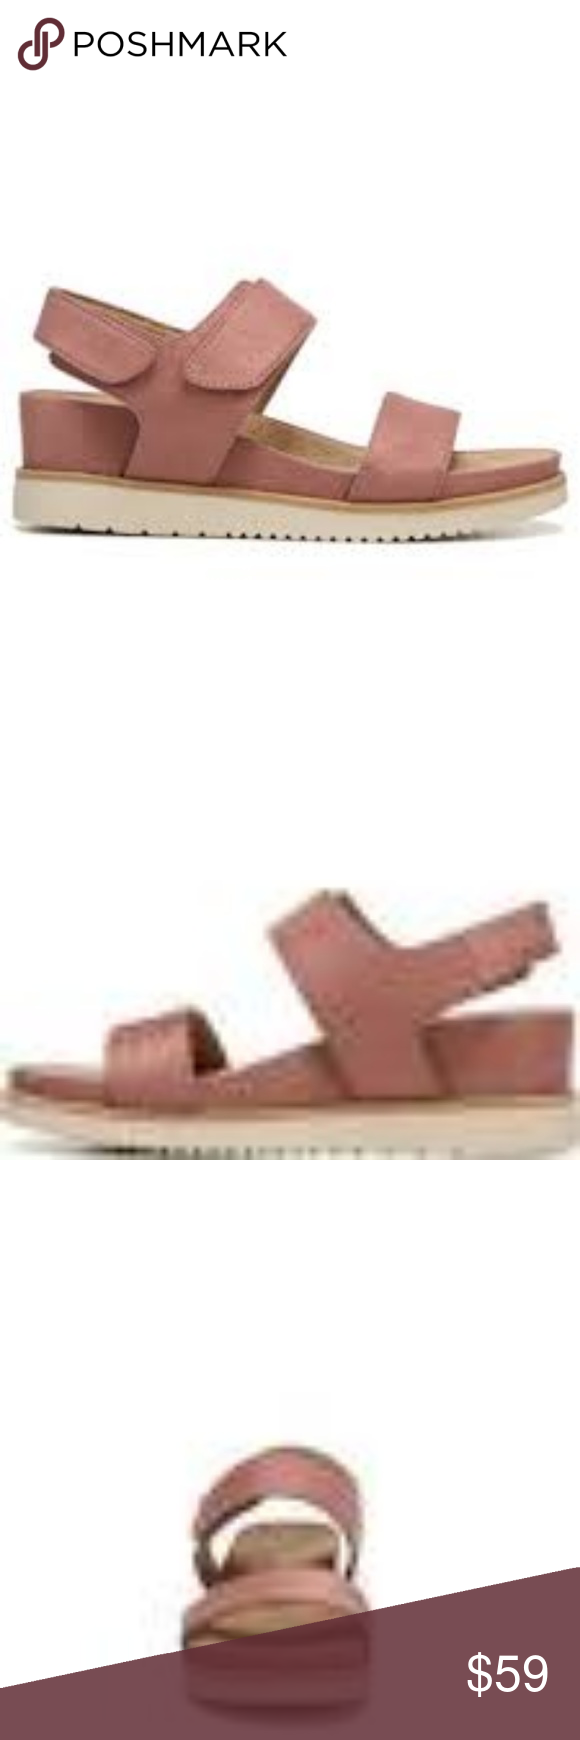 018396cb8fc2 Natural Soul Naturalizer Kaila Sandals Comfort Effortless ease. Clean lines  and bold bands make this